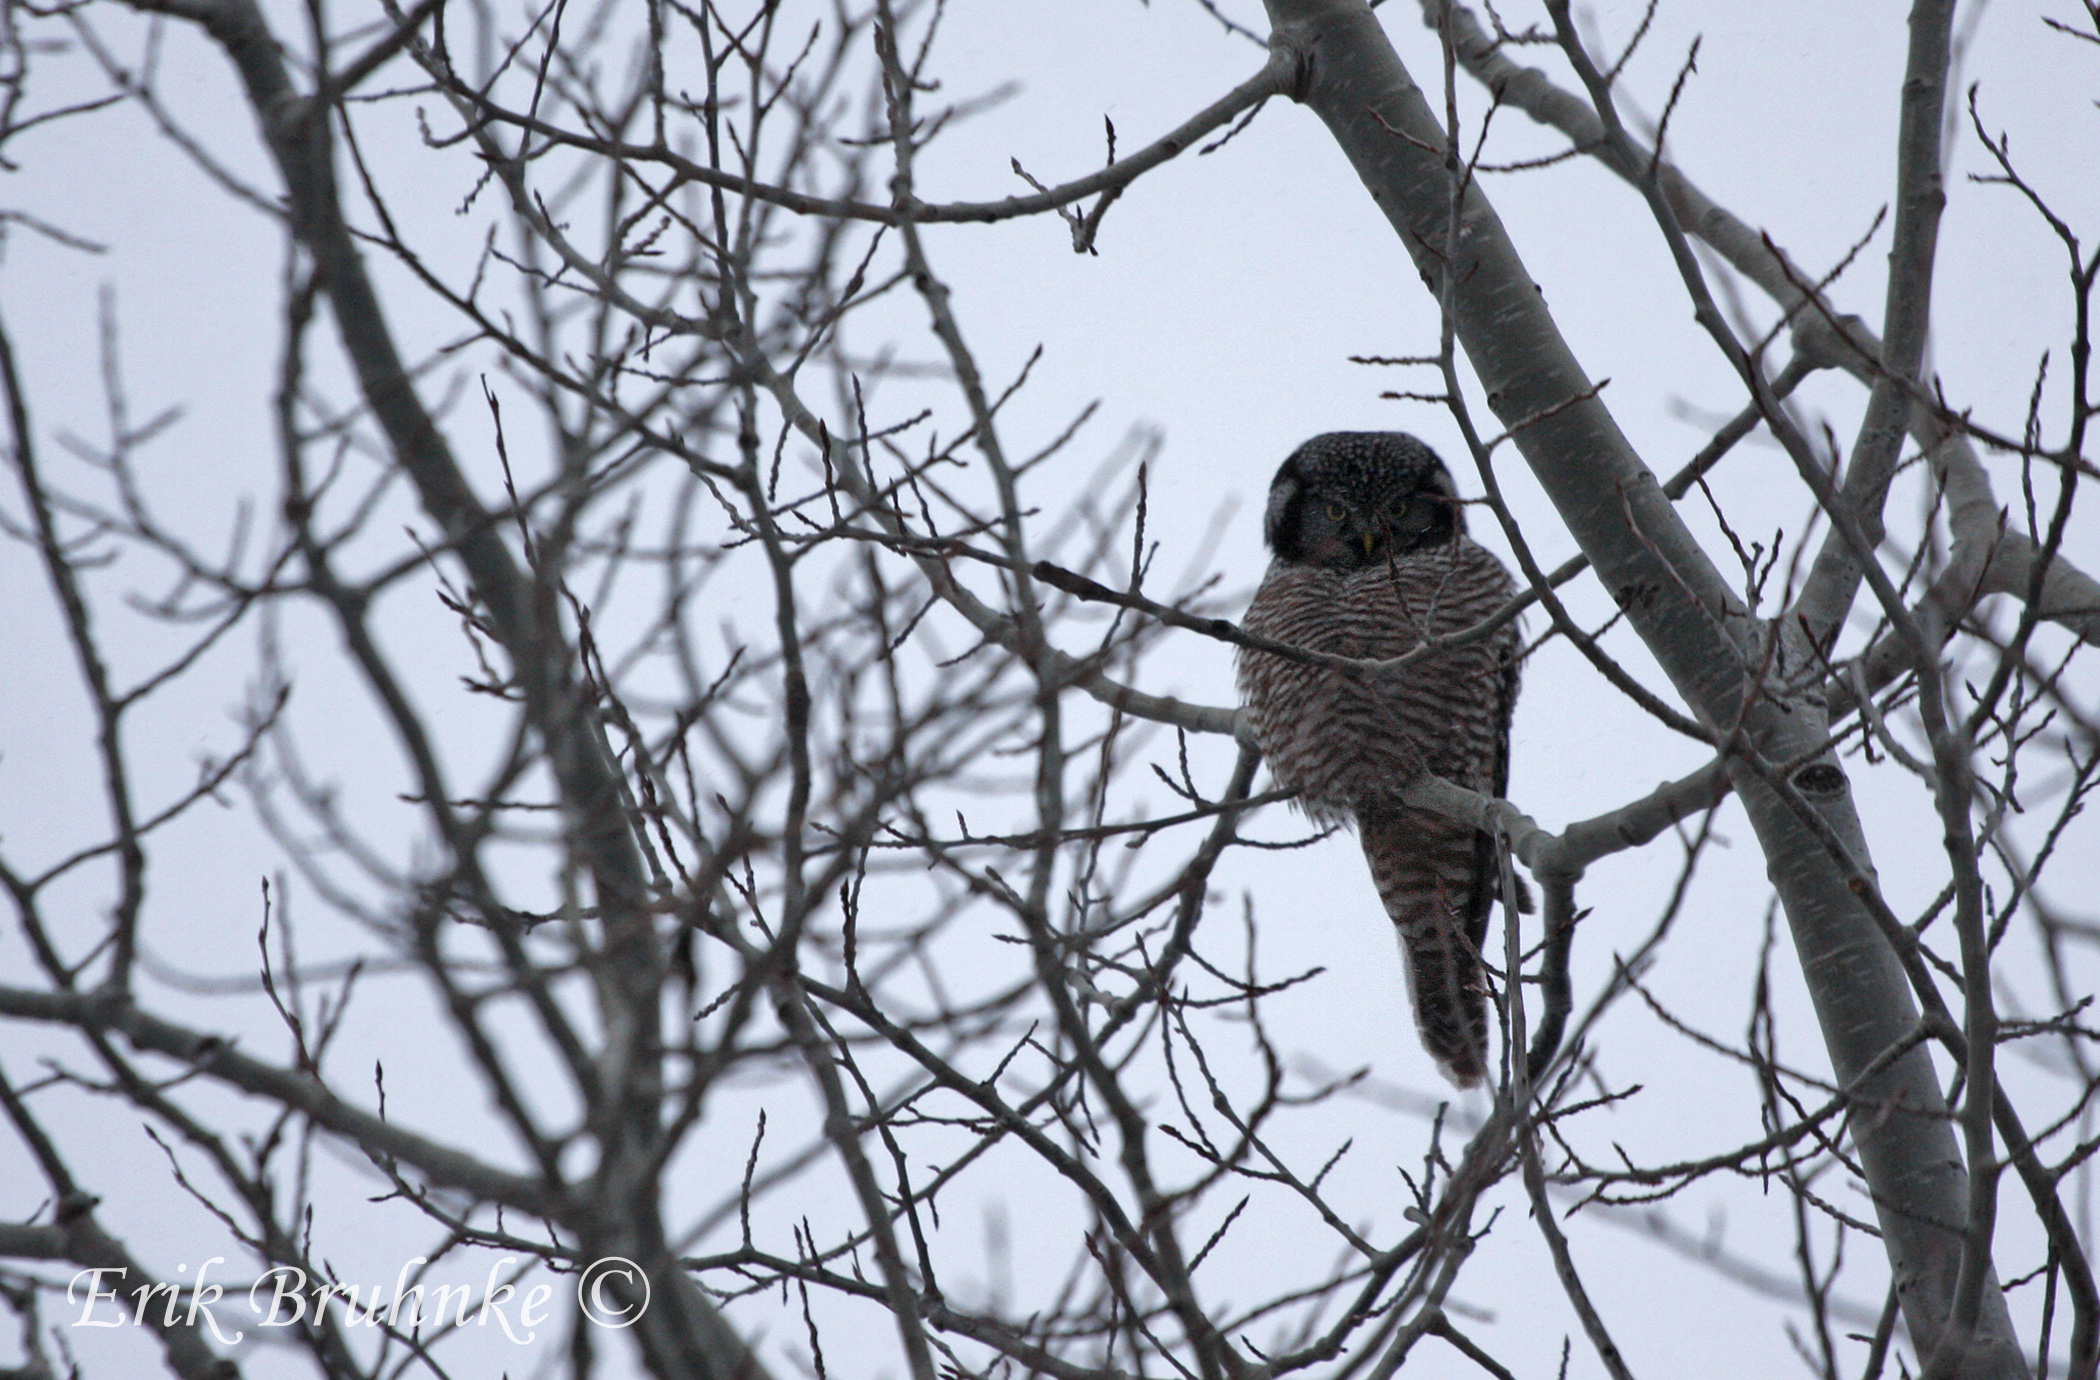 Northern Hawk Owl.  Photo by Erik Bruhnke.